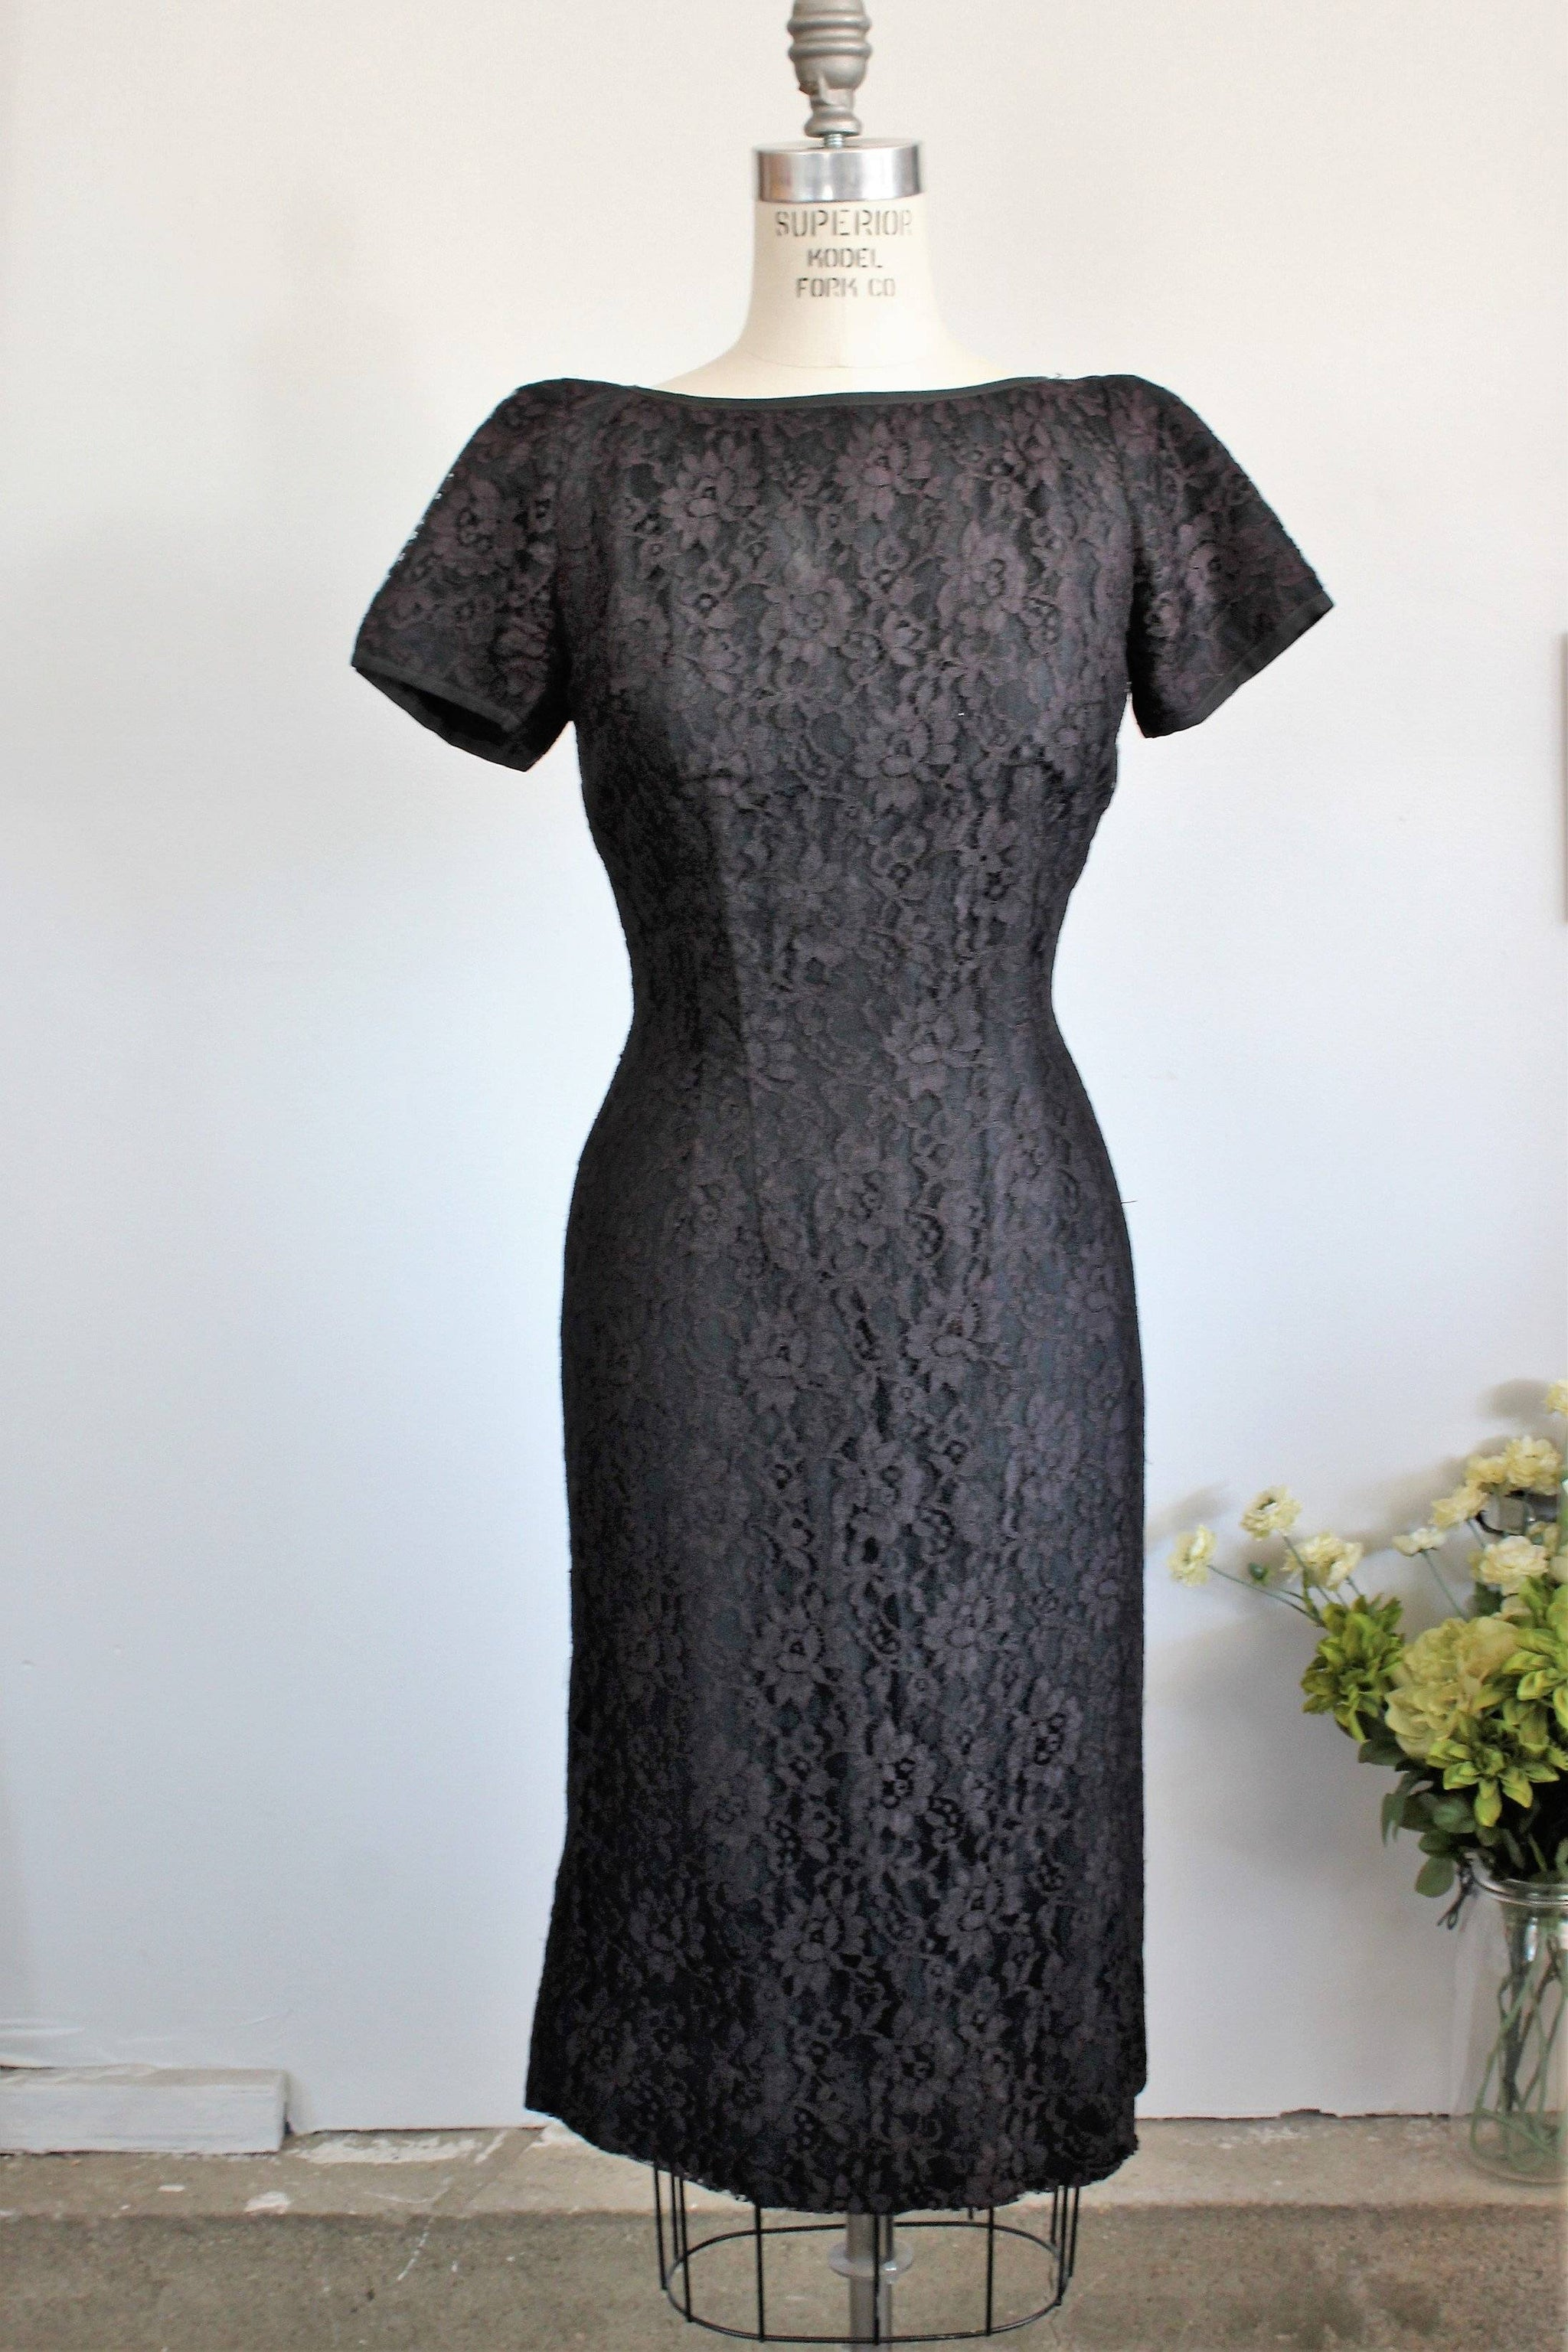 2981d4efd87 Vintage 1950s Black Lace Wiggle Dress With Cap Sleeve